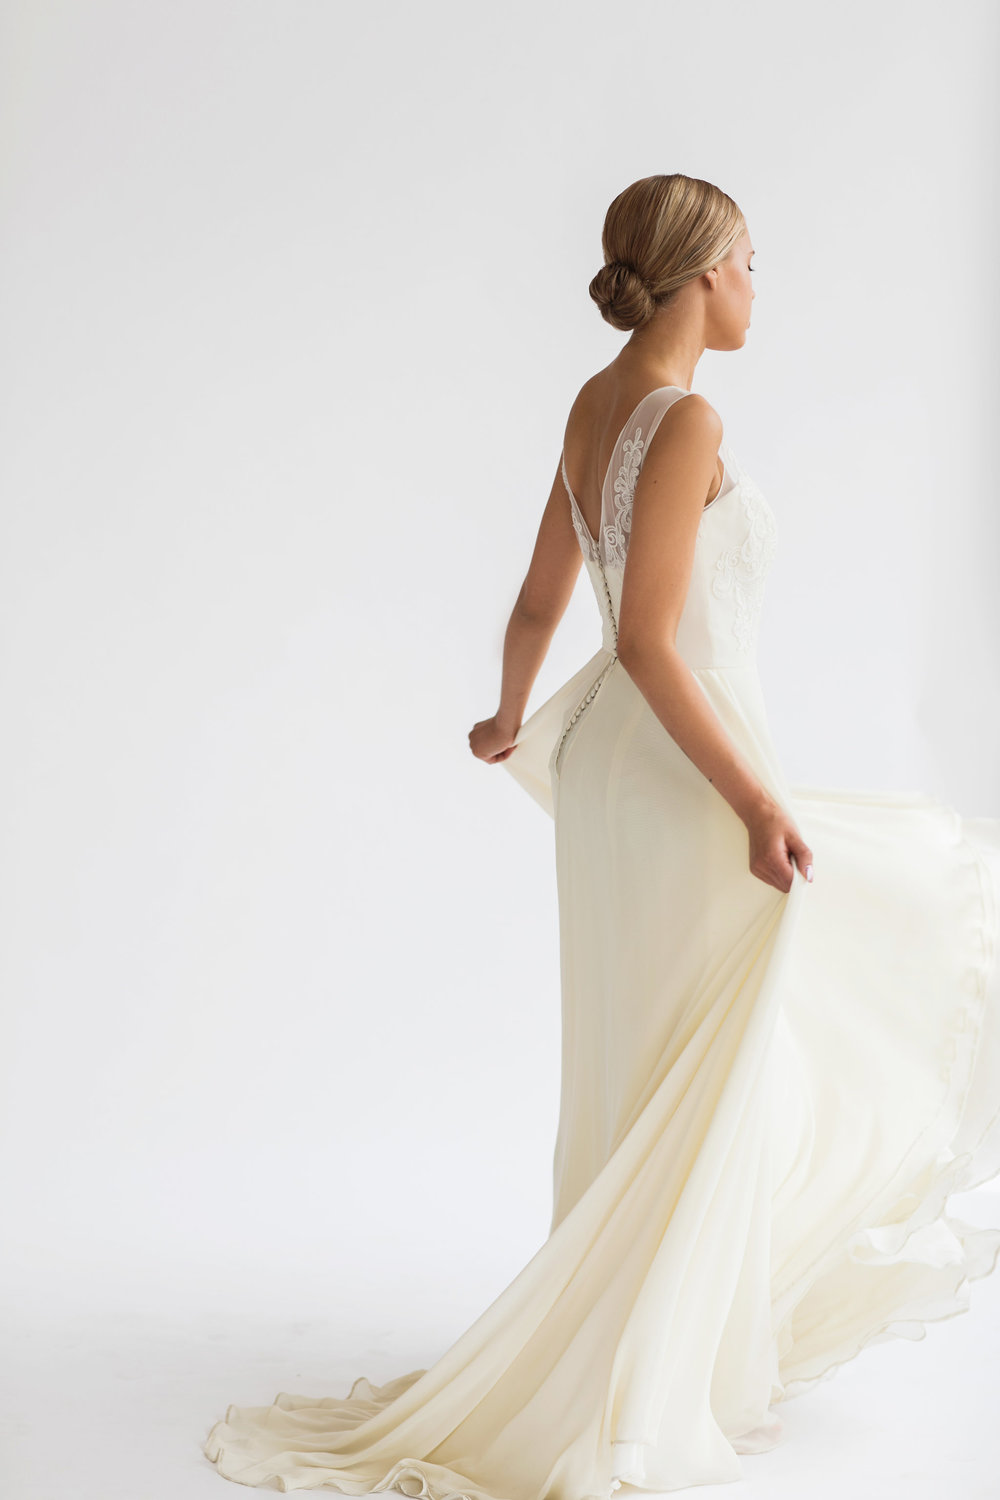 Minneapolis Bridal Shop | MN Bridal Store | Wedding Shop